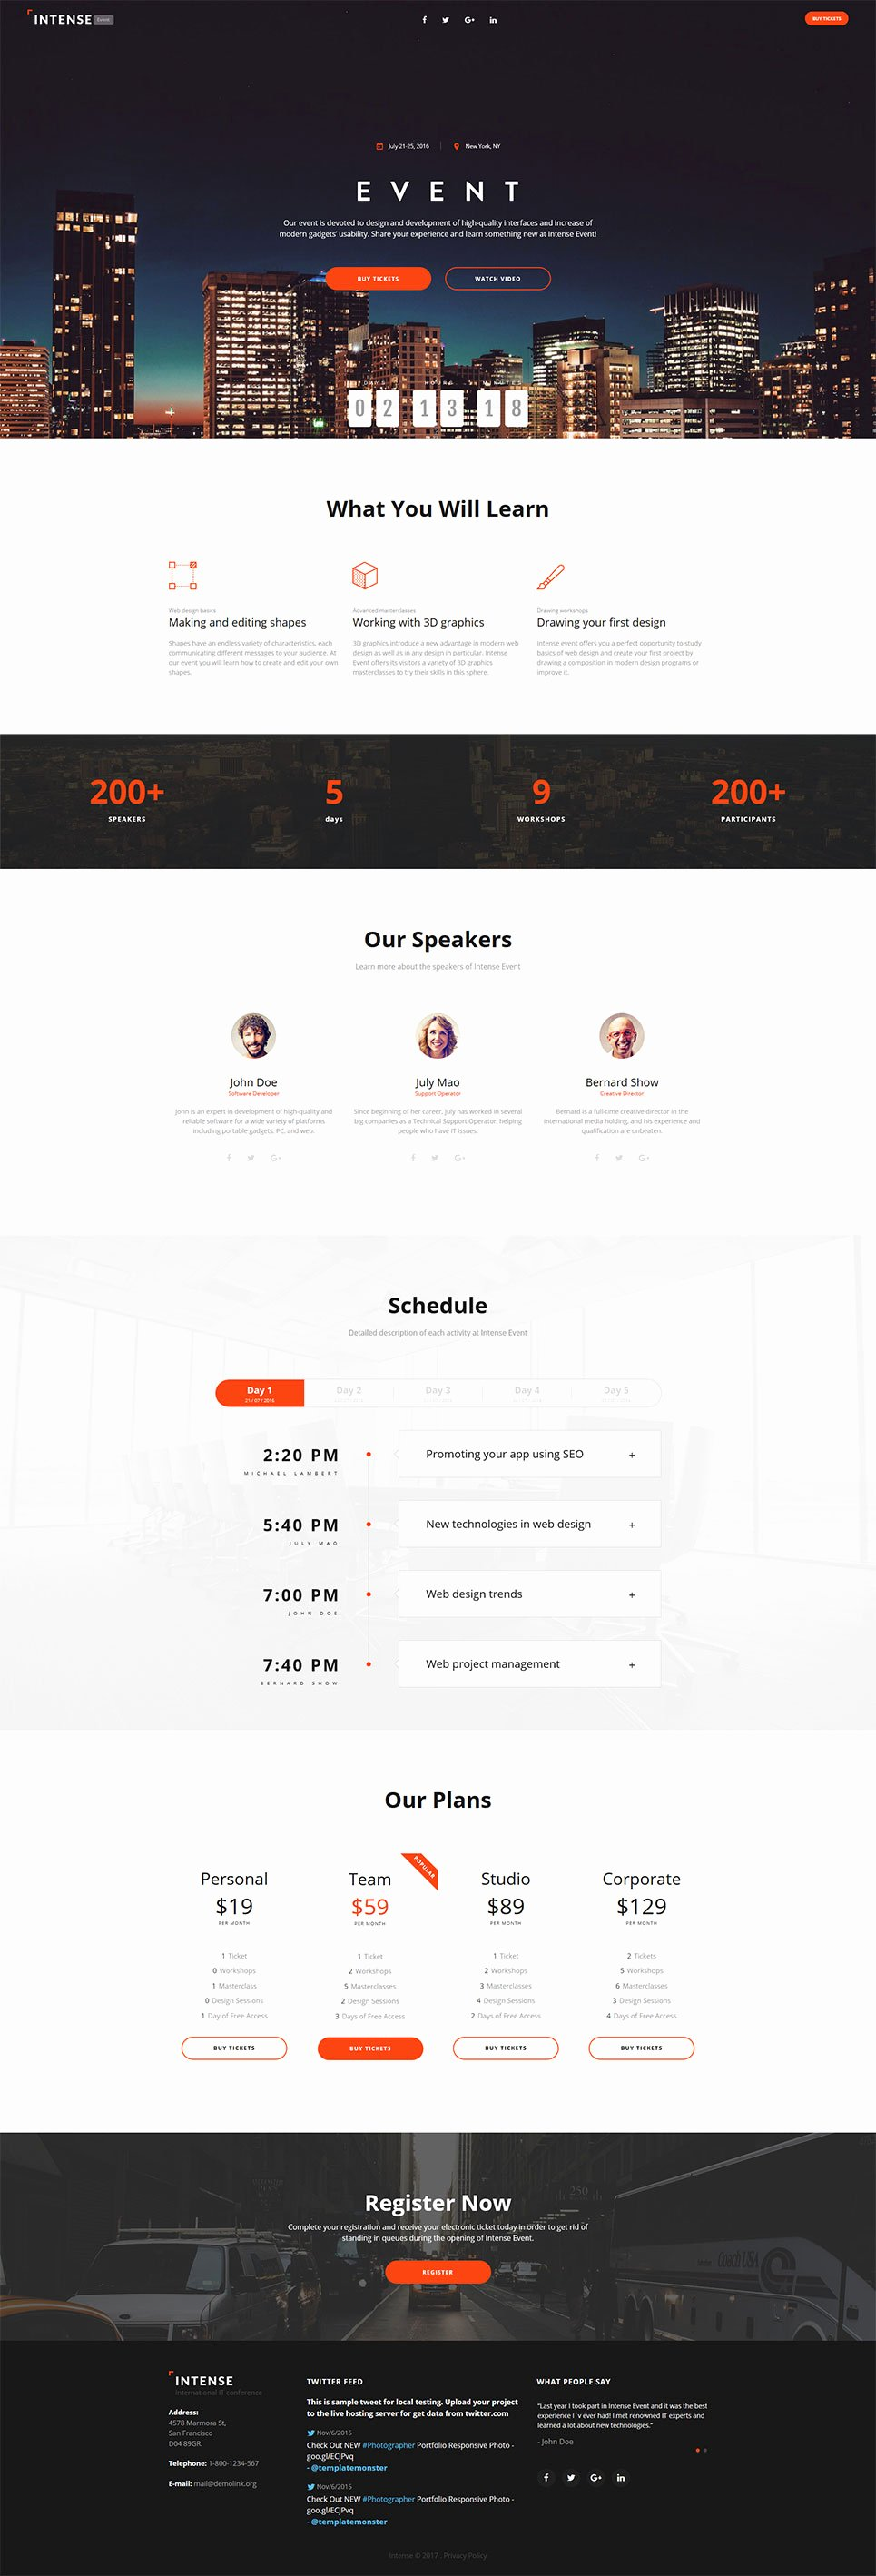 Event Planner Website Template Luxury event Planner HTML5 Template